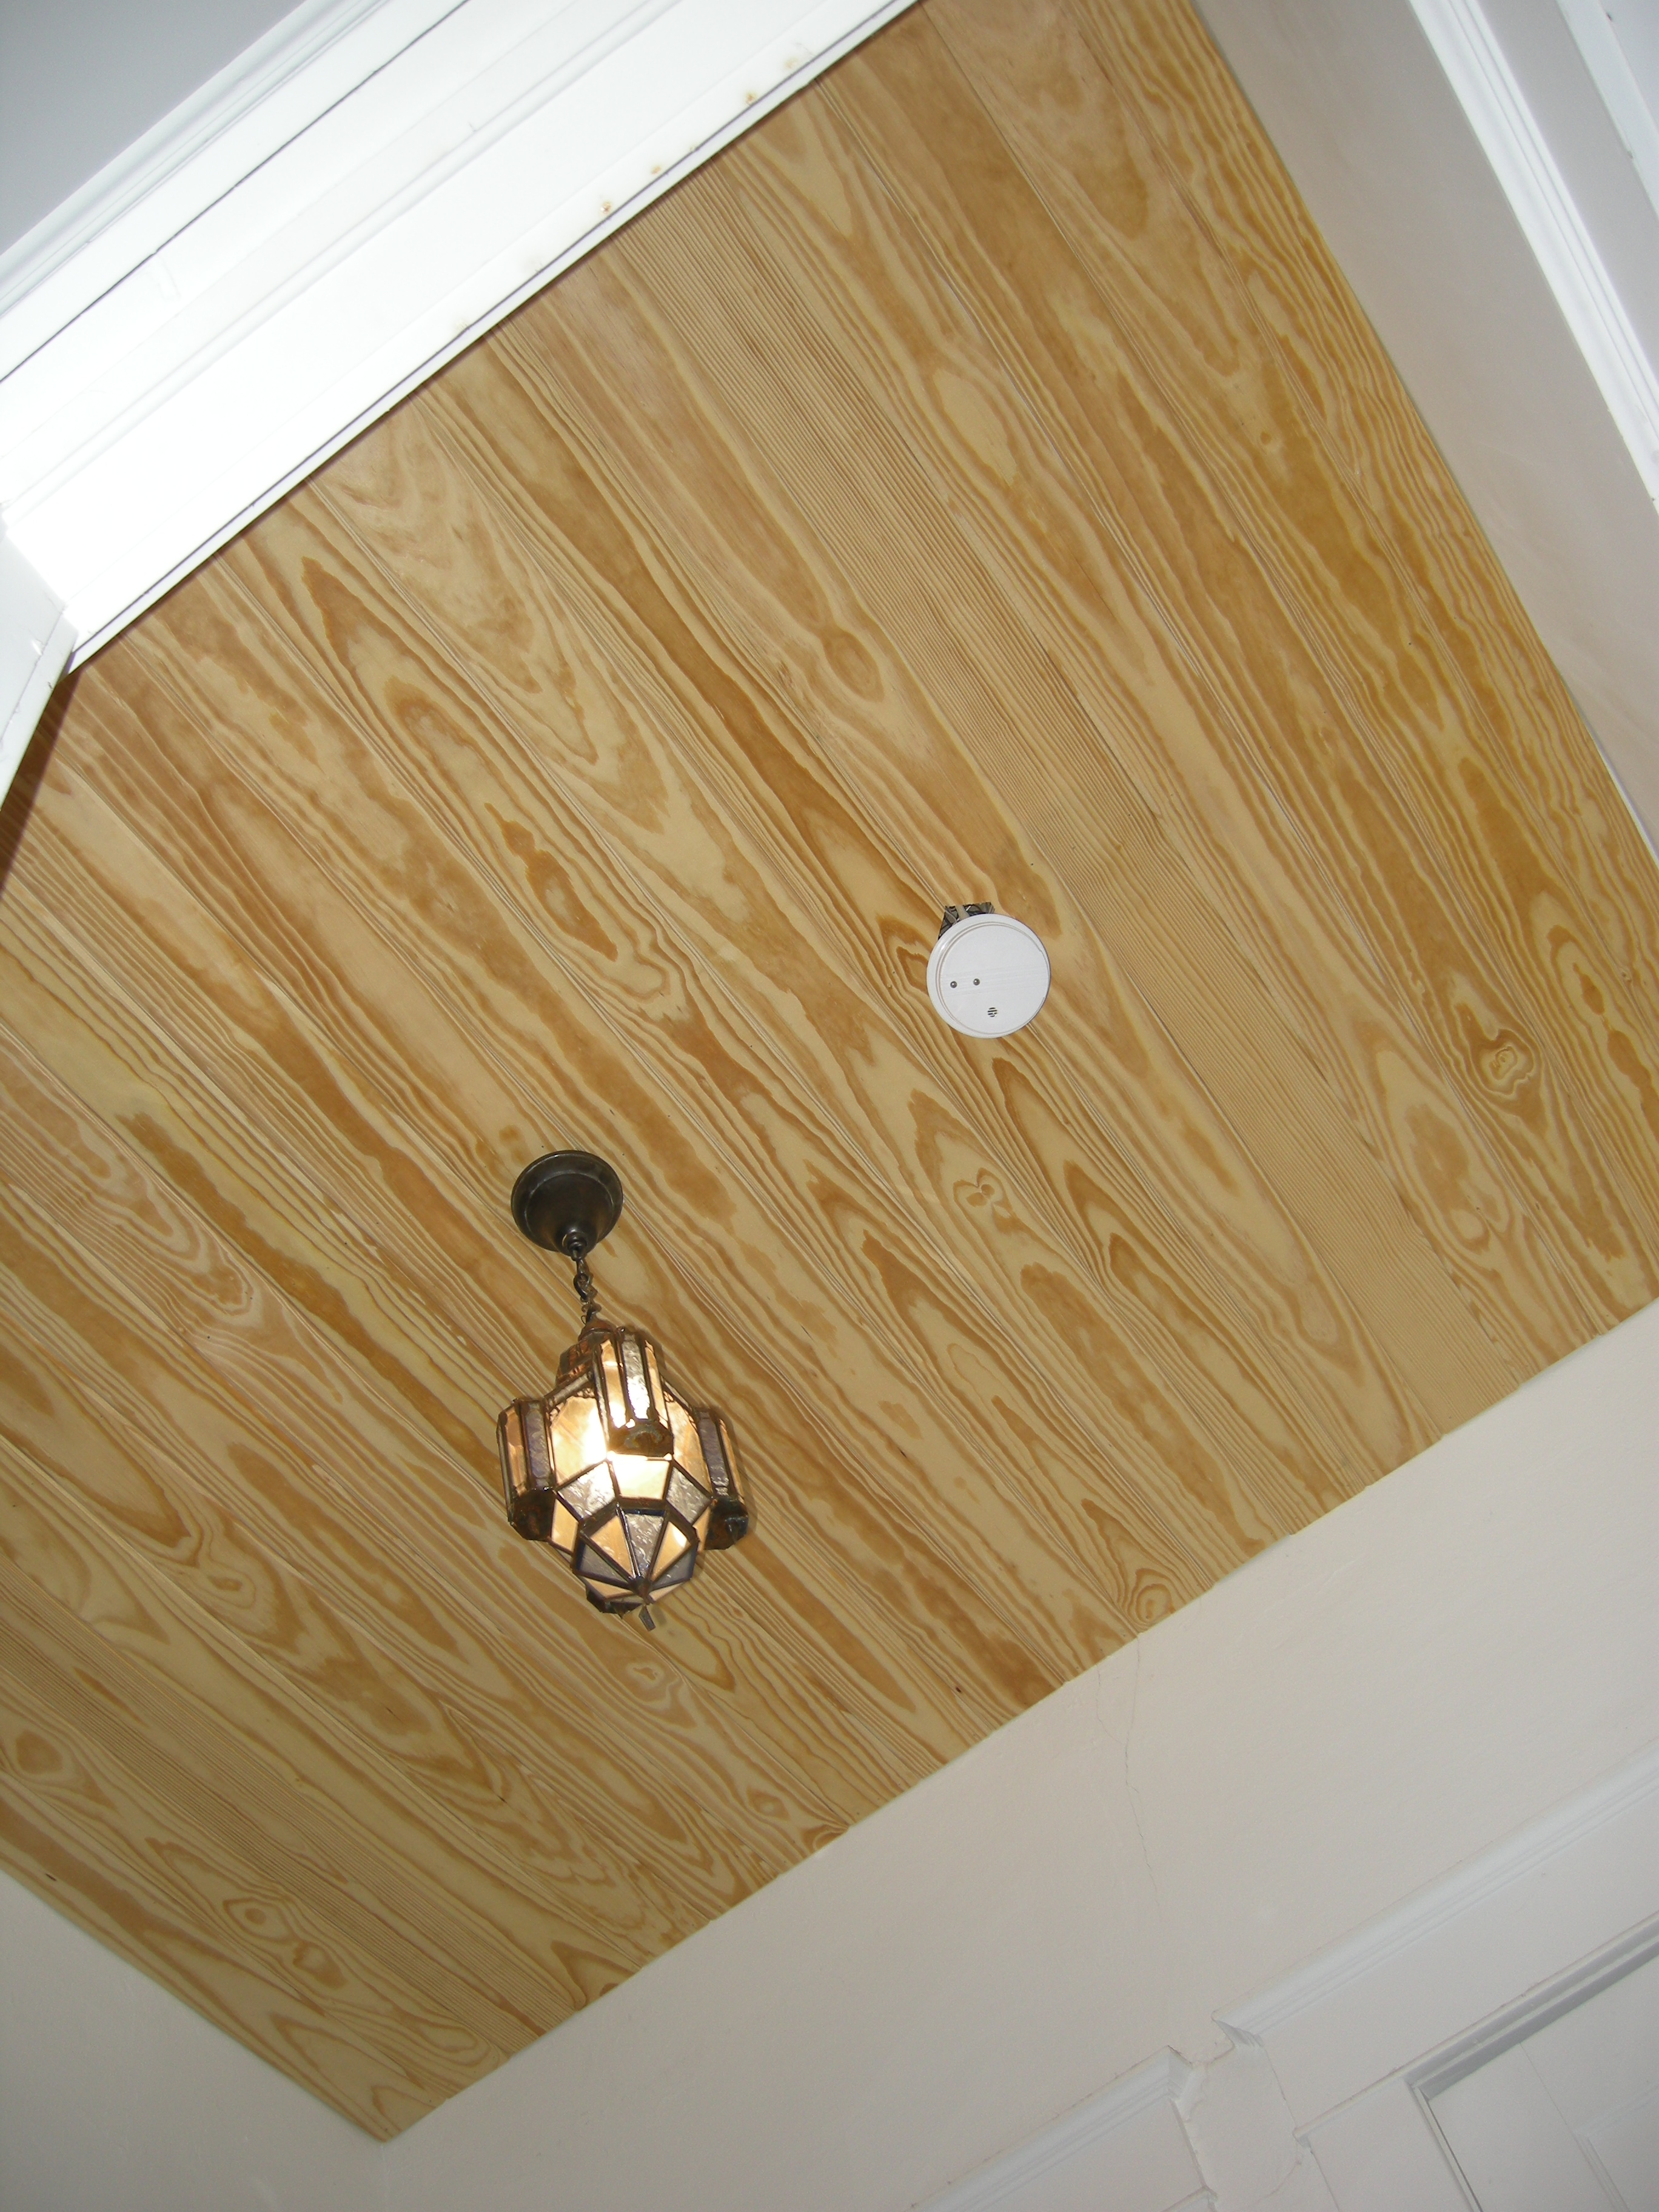 Superb img of Wood Panel Ceiling Westview Bungalow with #65492B color and 2736x3648 pixels